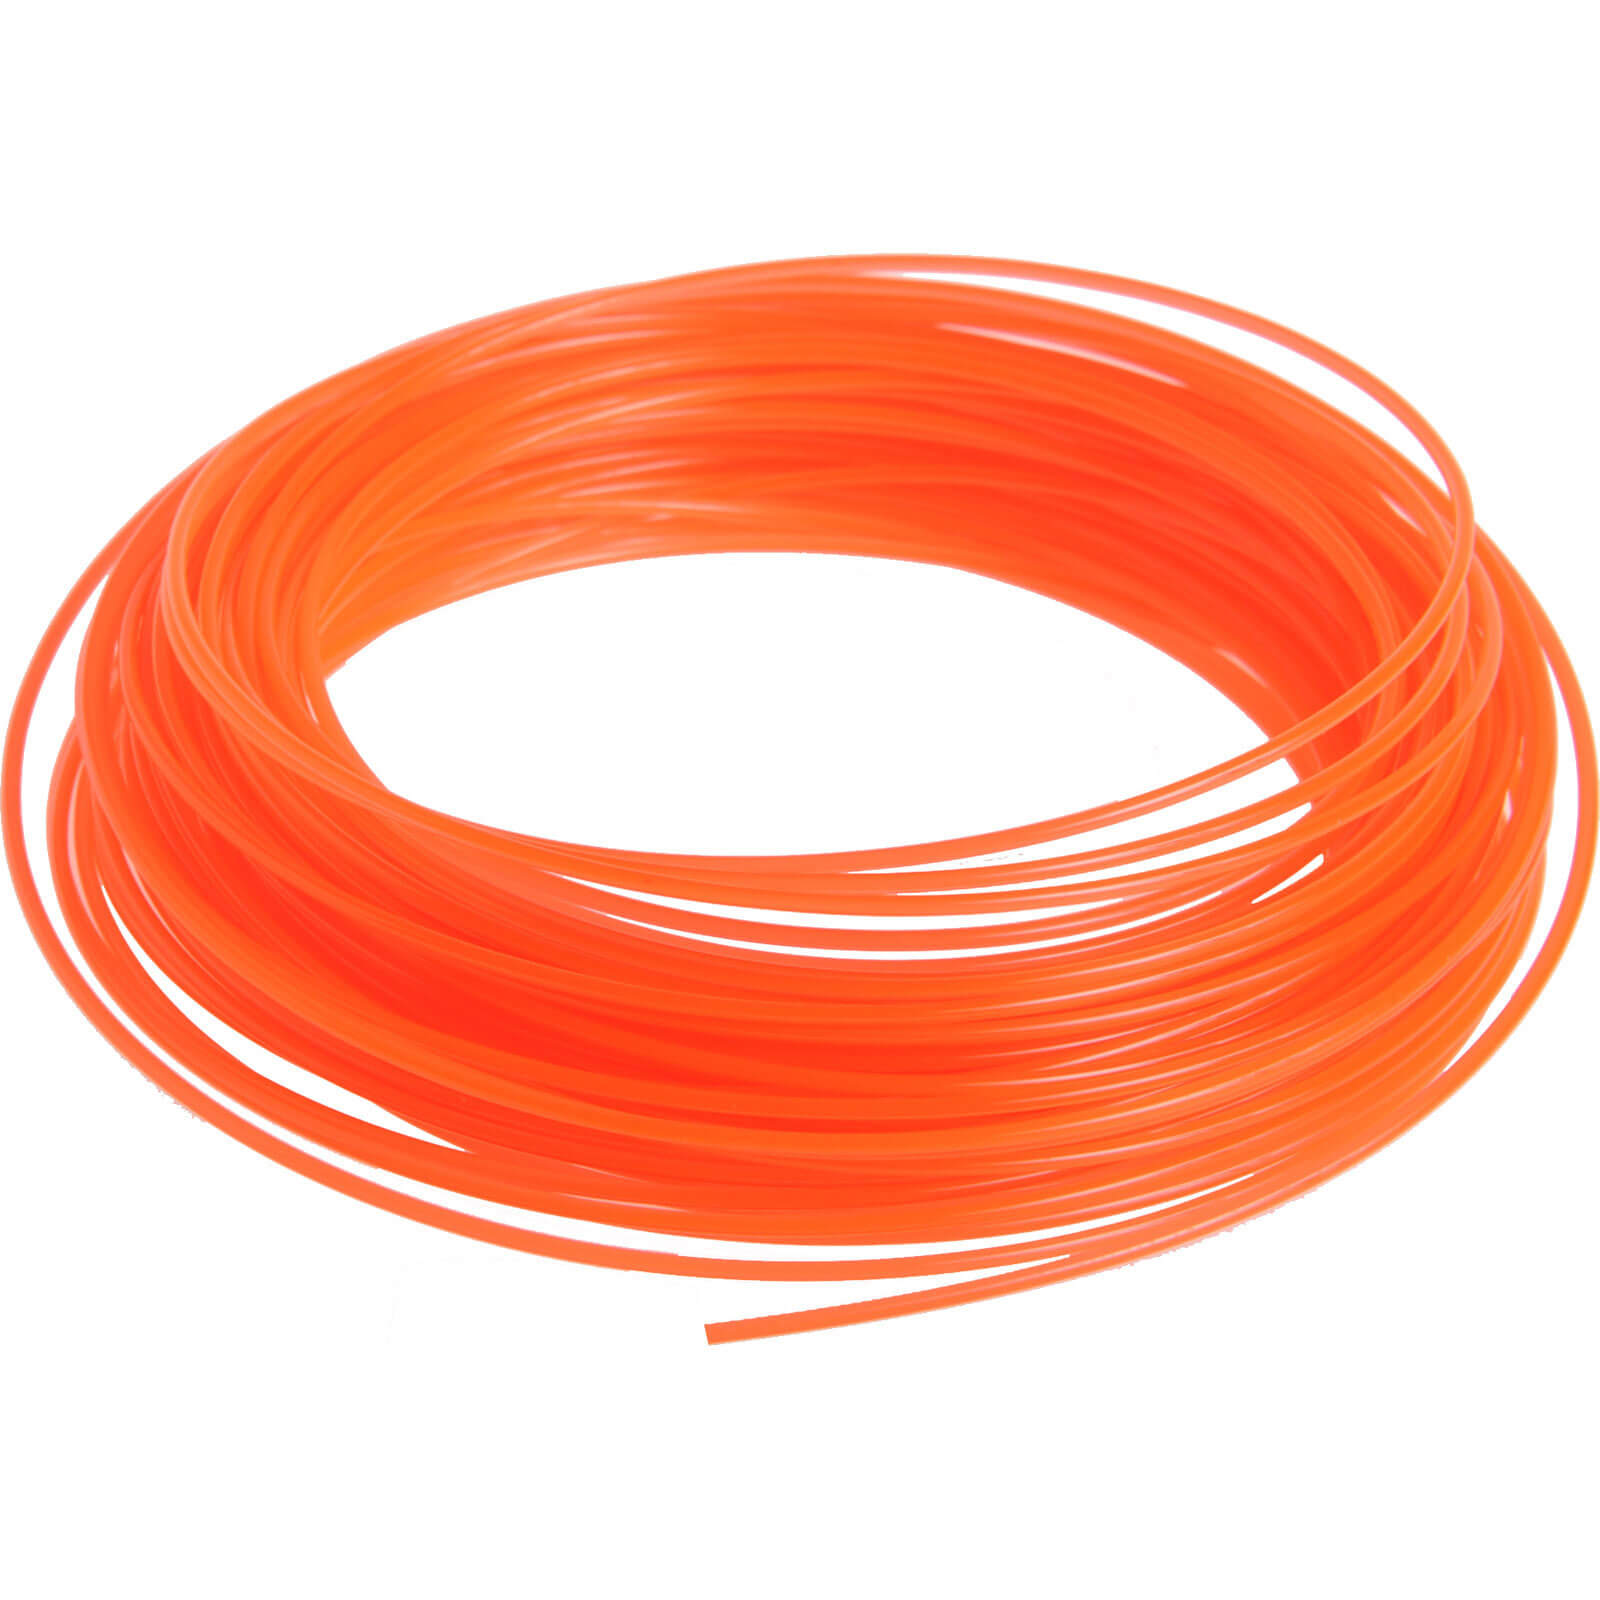 Ryobi RAC100 15 Metre x 1.2mm Orange Cutting Line for Electric Grass Trimmers